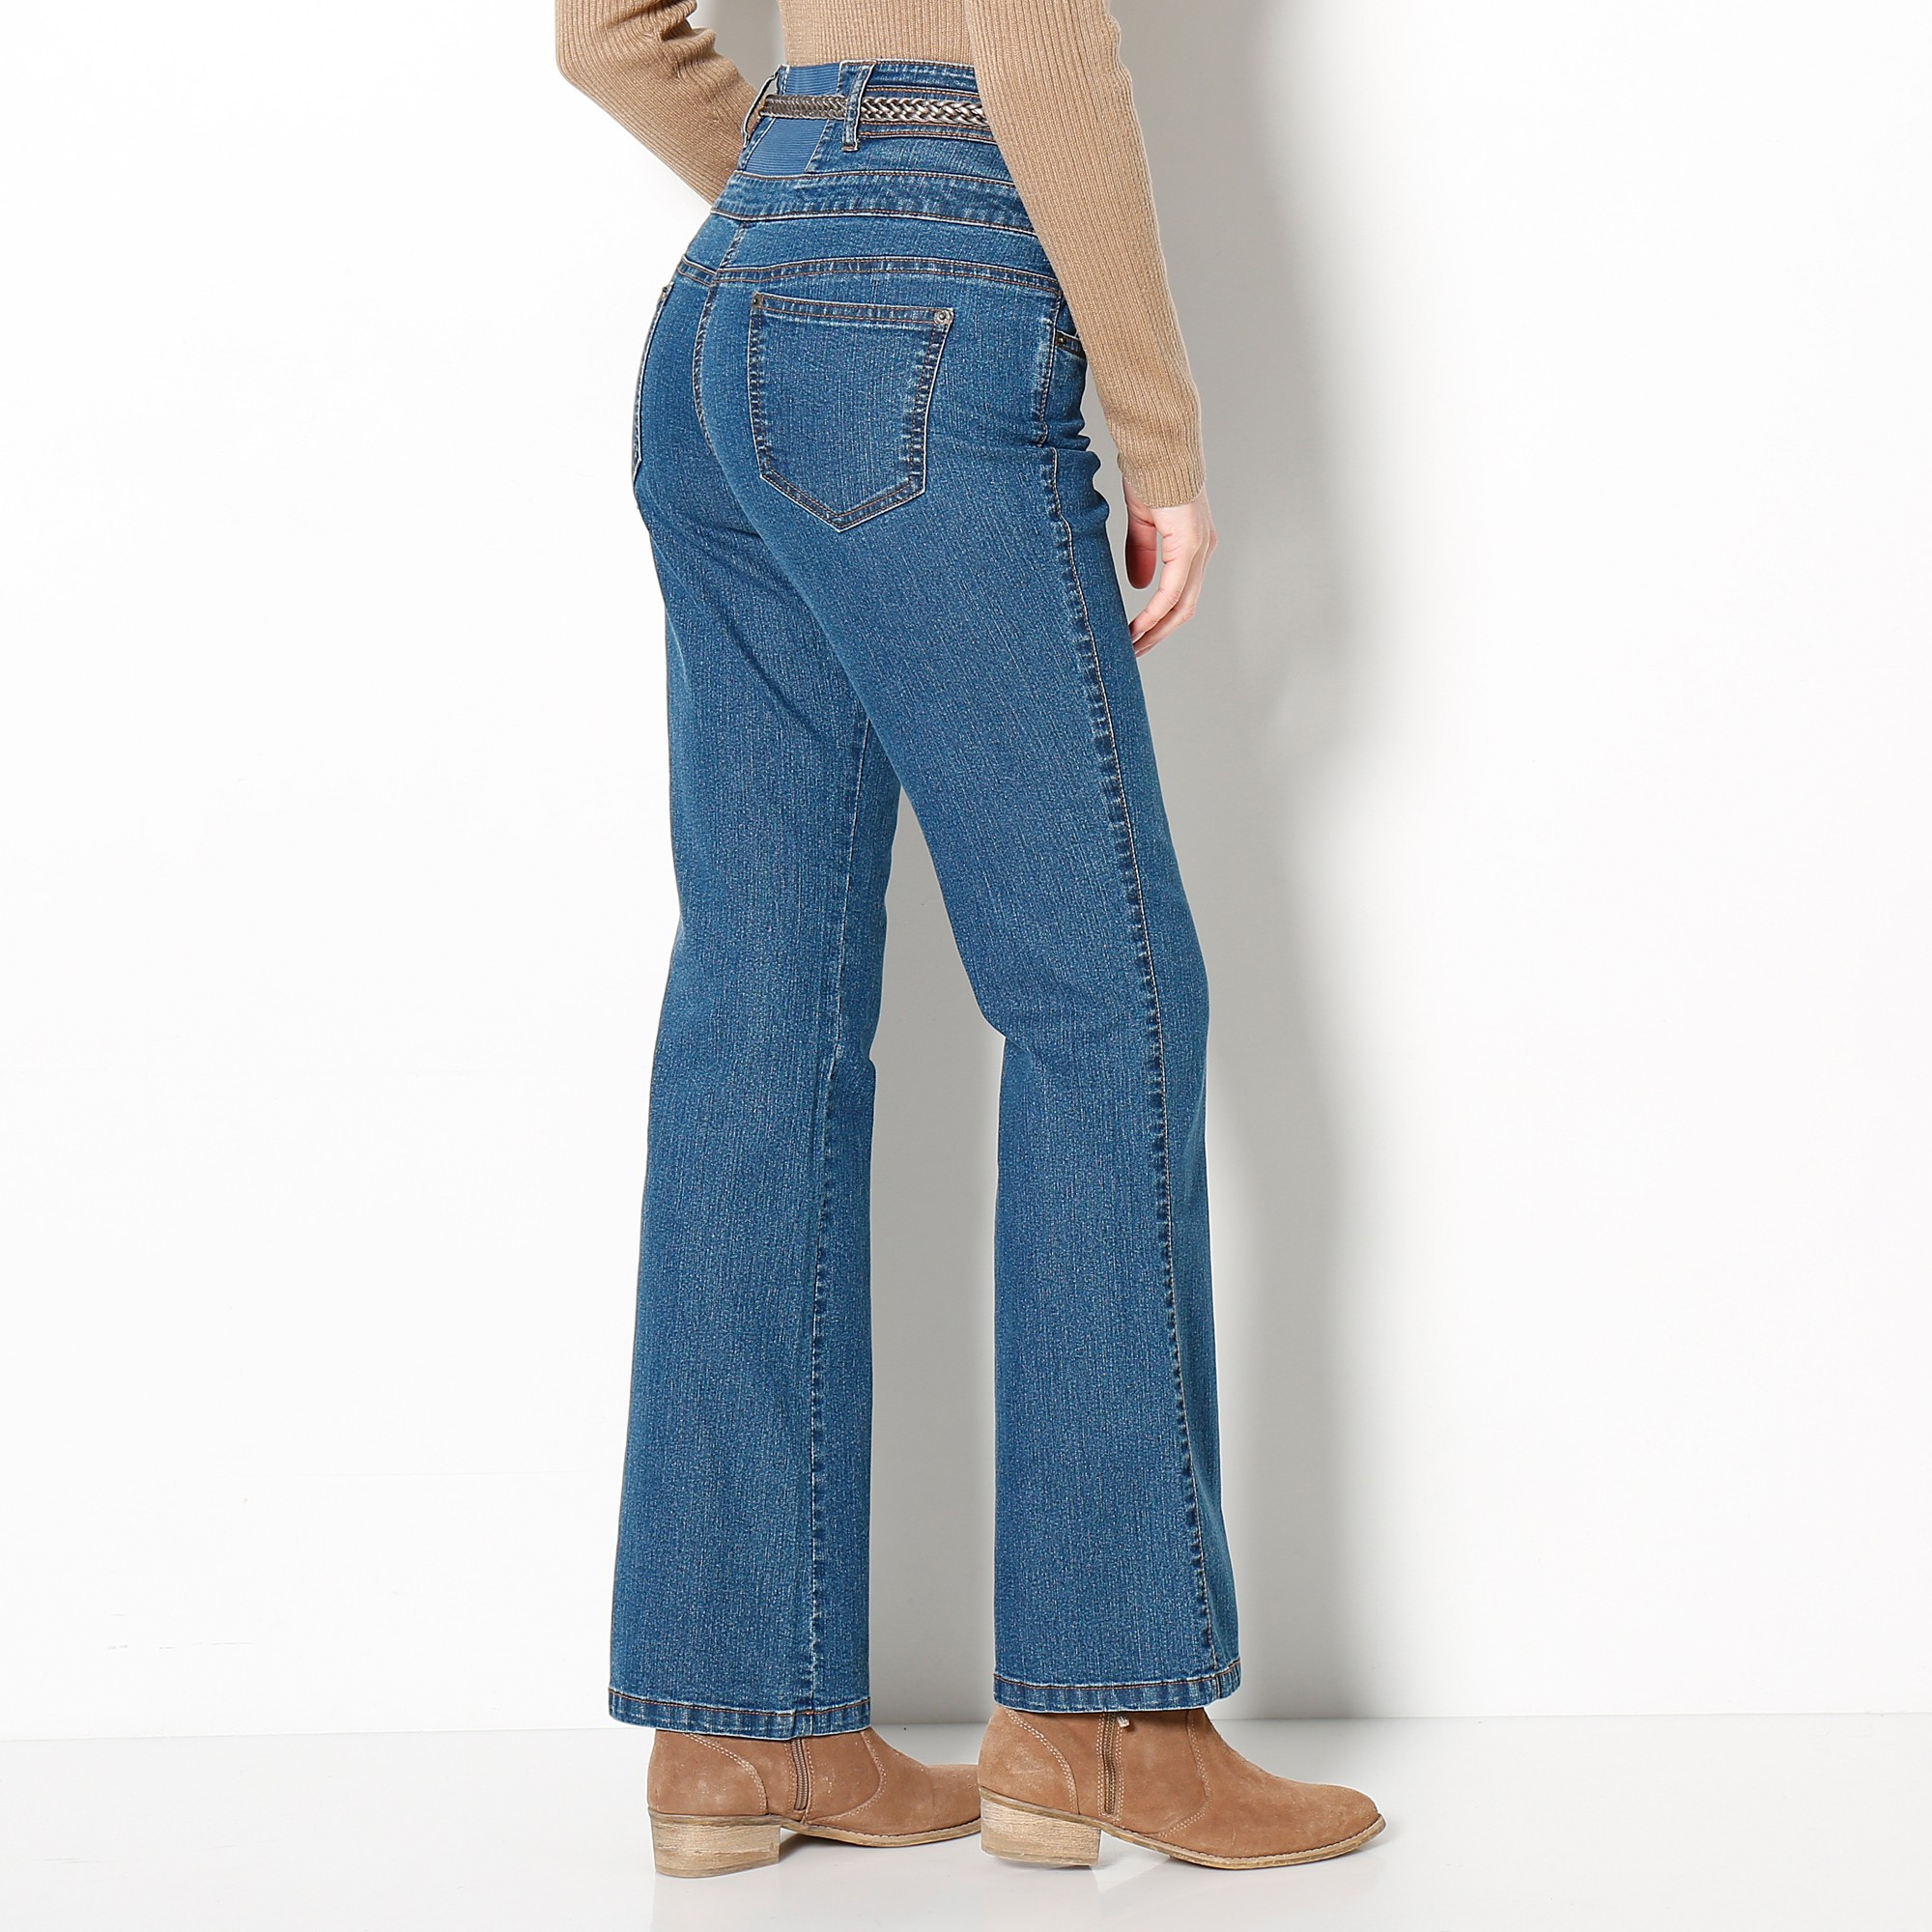 Bootcut Cm Blancheporte Coupe 78 Taille Haute 0xtqswy16 Jean Entrej O77P4n6